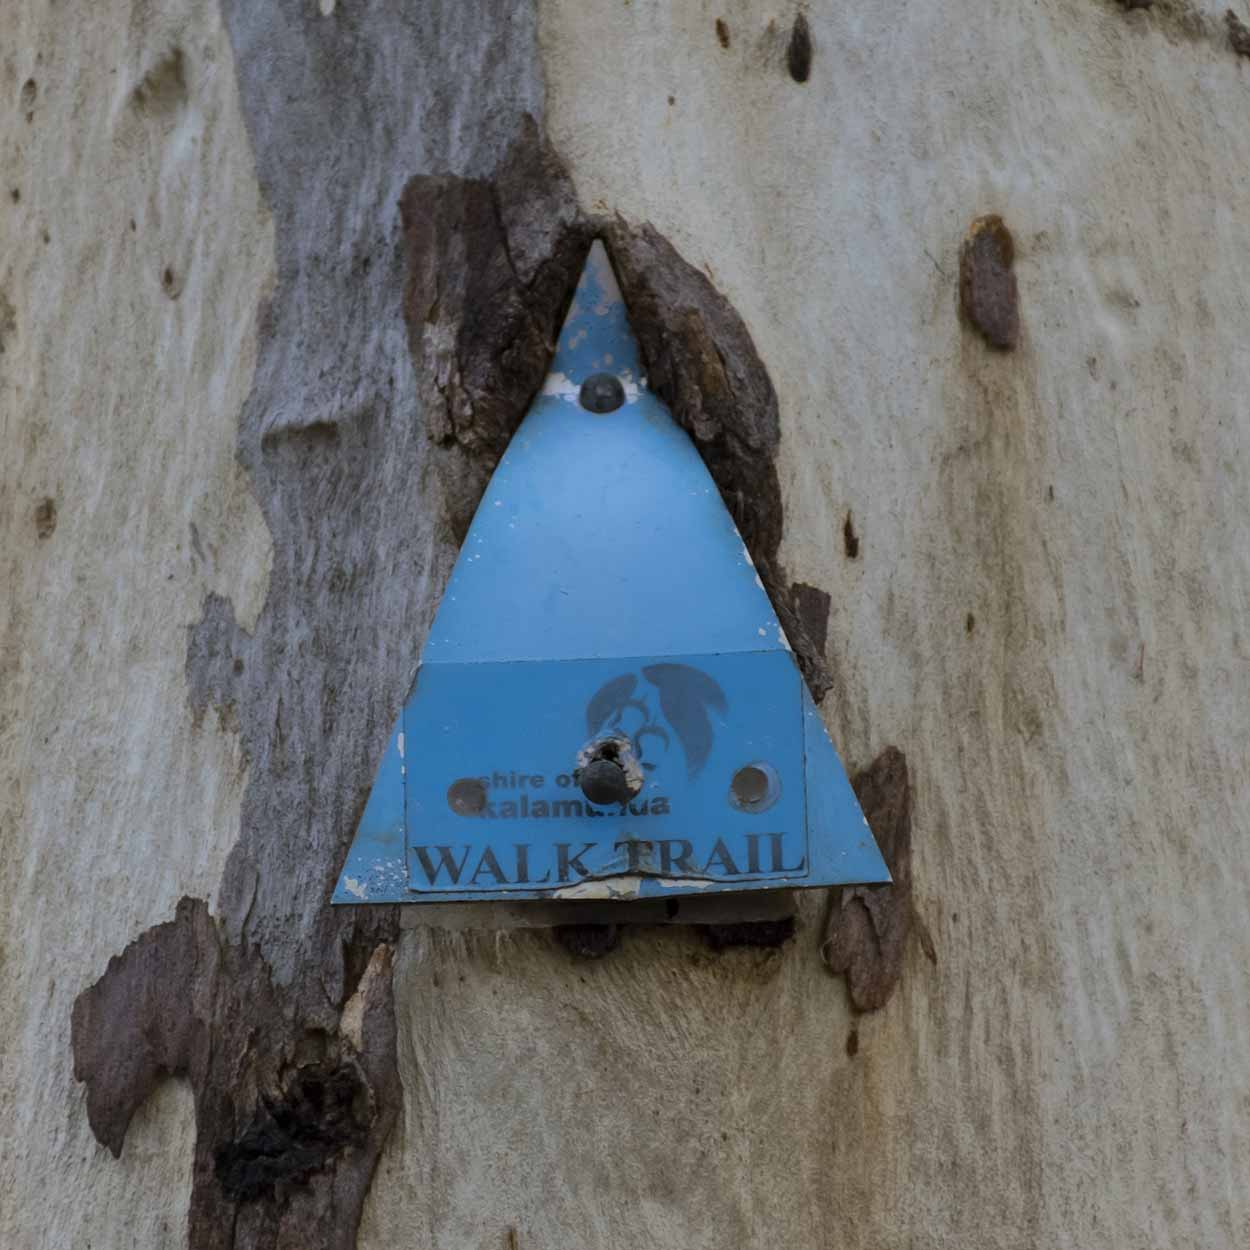 Trail marker for the Lion's Lookout Walk, Lion's Lookout, Perth, Western Australia